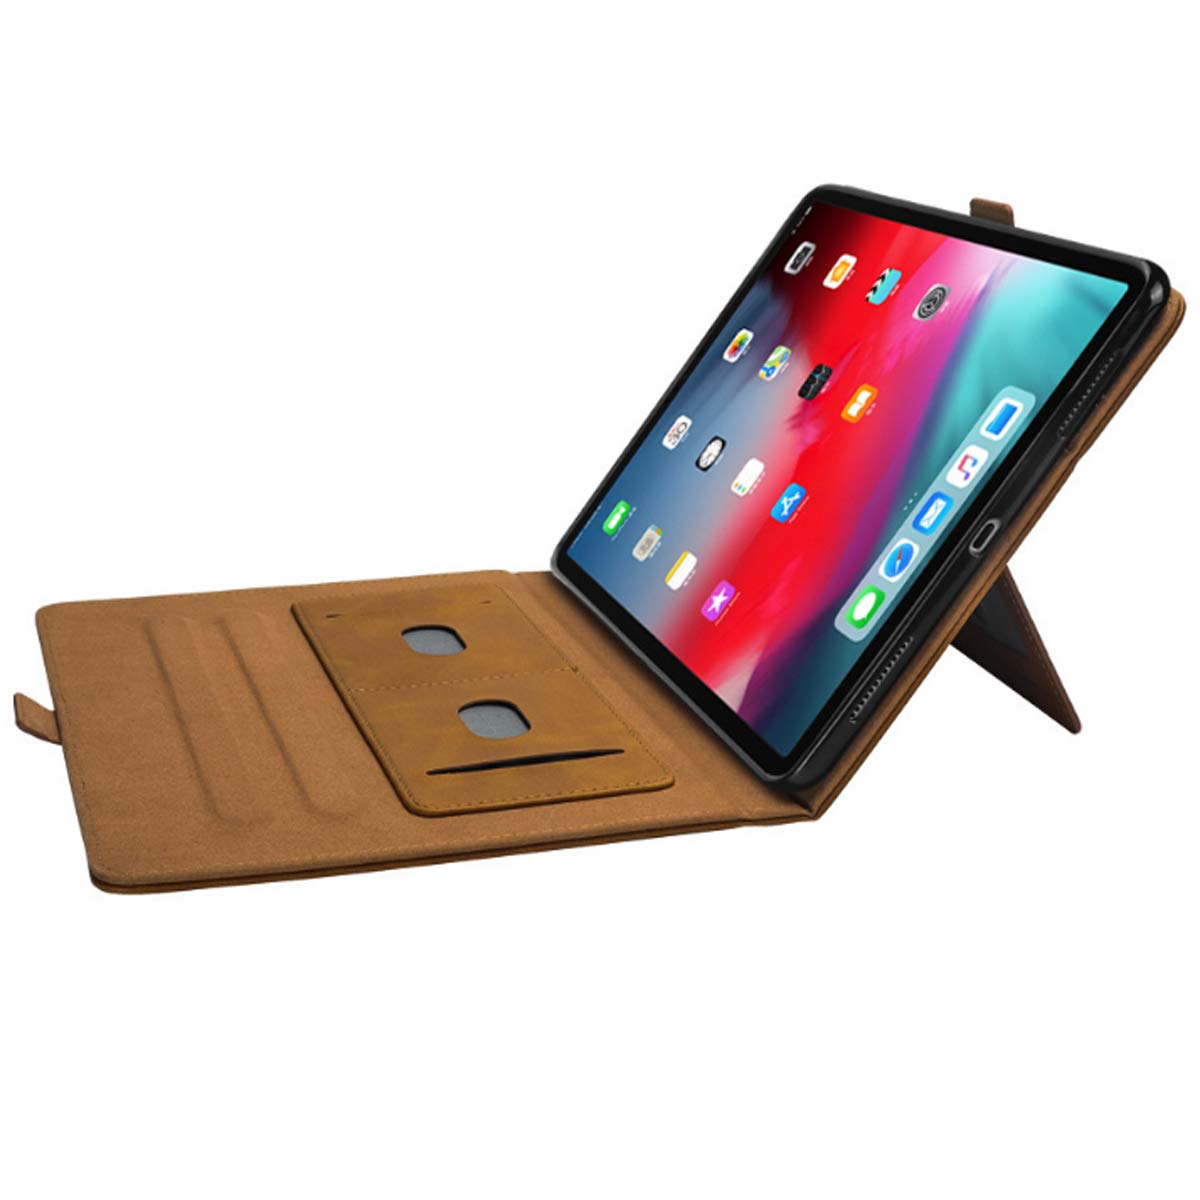 iPad 6th Generation Cases with Pencil Holder, Premium PU Leather Folio Case Soft TPU Back Protective Stand Cover with Card Slots for iPad 9.7 Inch 2018 (6th Gen) / iPad 9.7'' 2017 (5th Gen) –Khaki by KATEGY (Image #6)